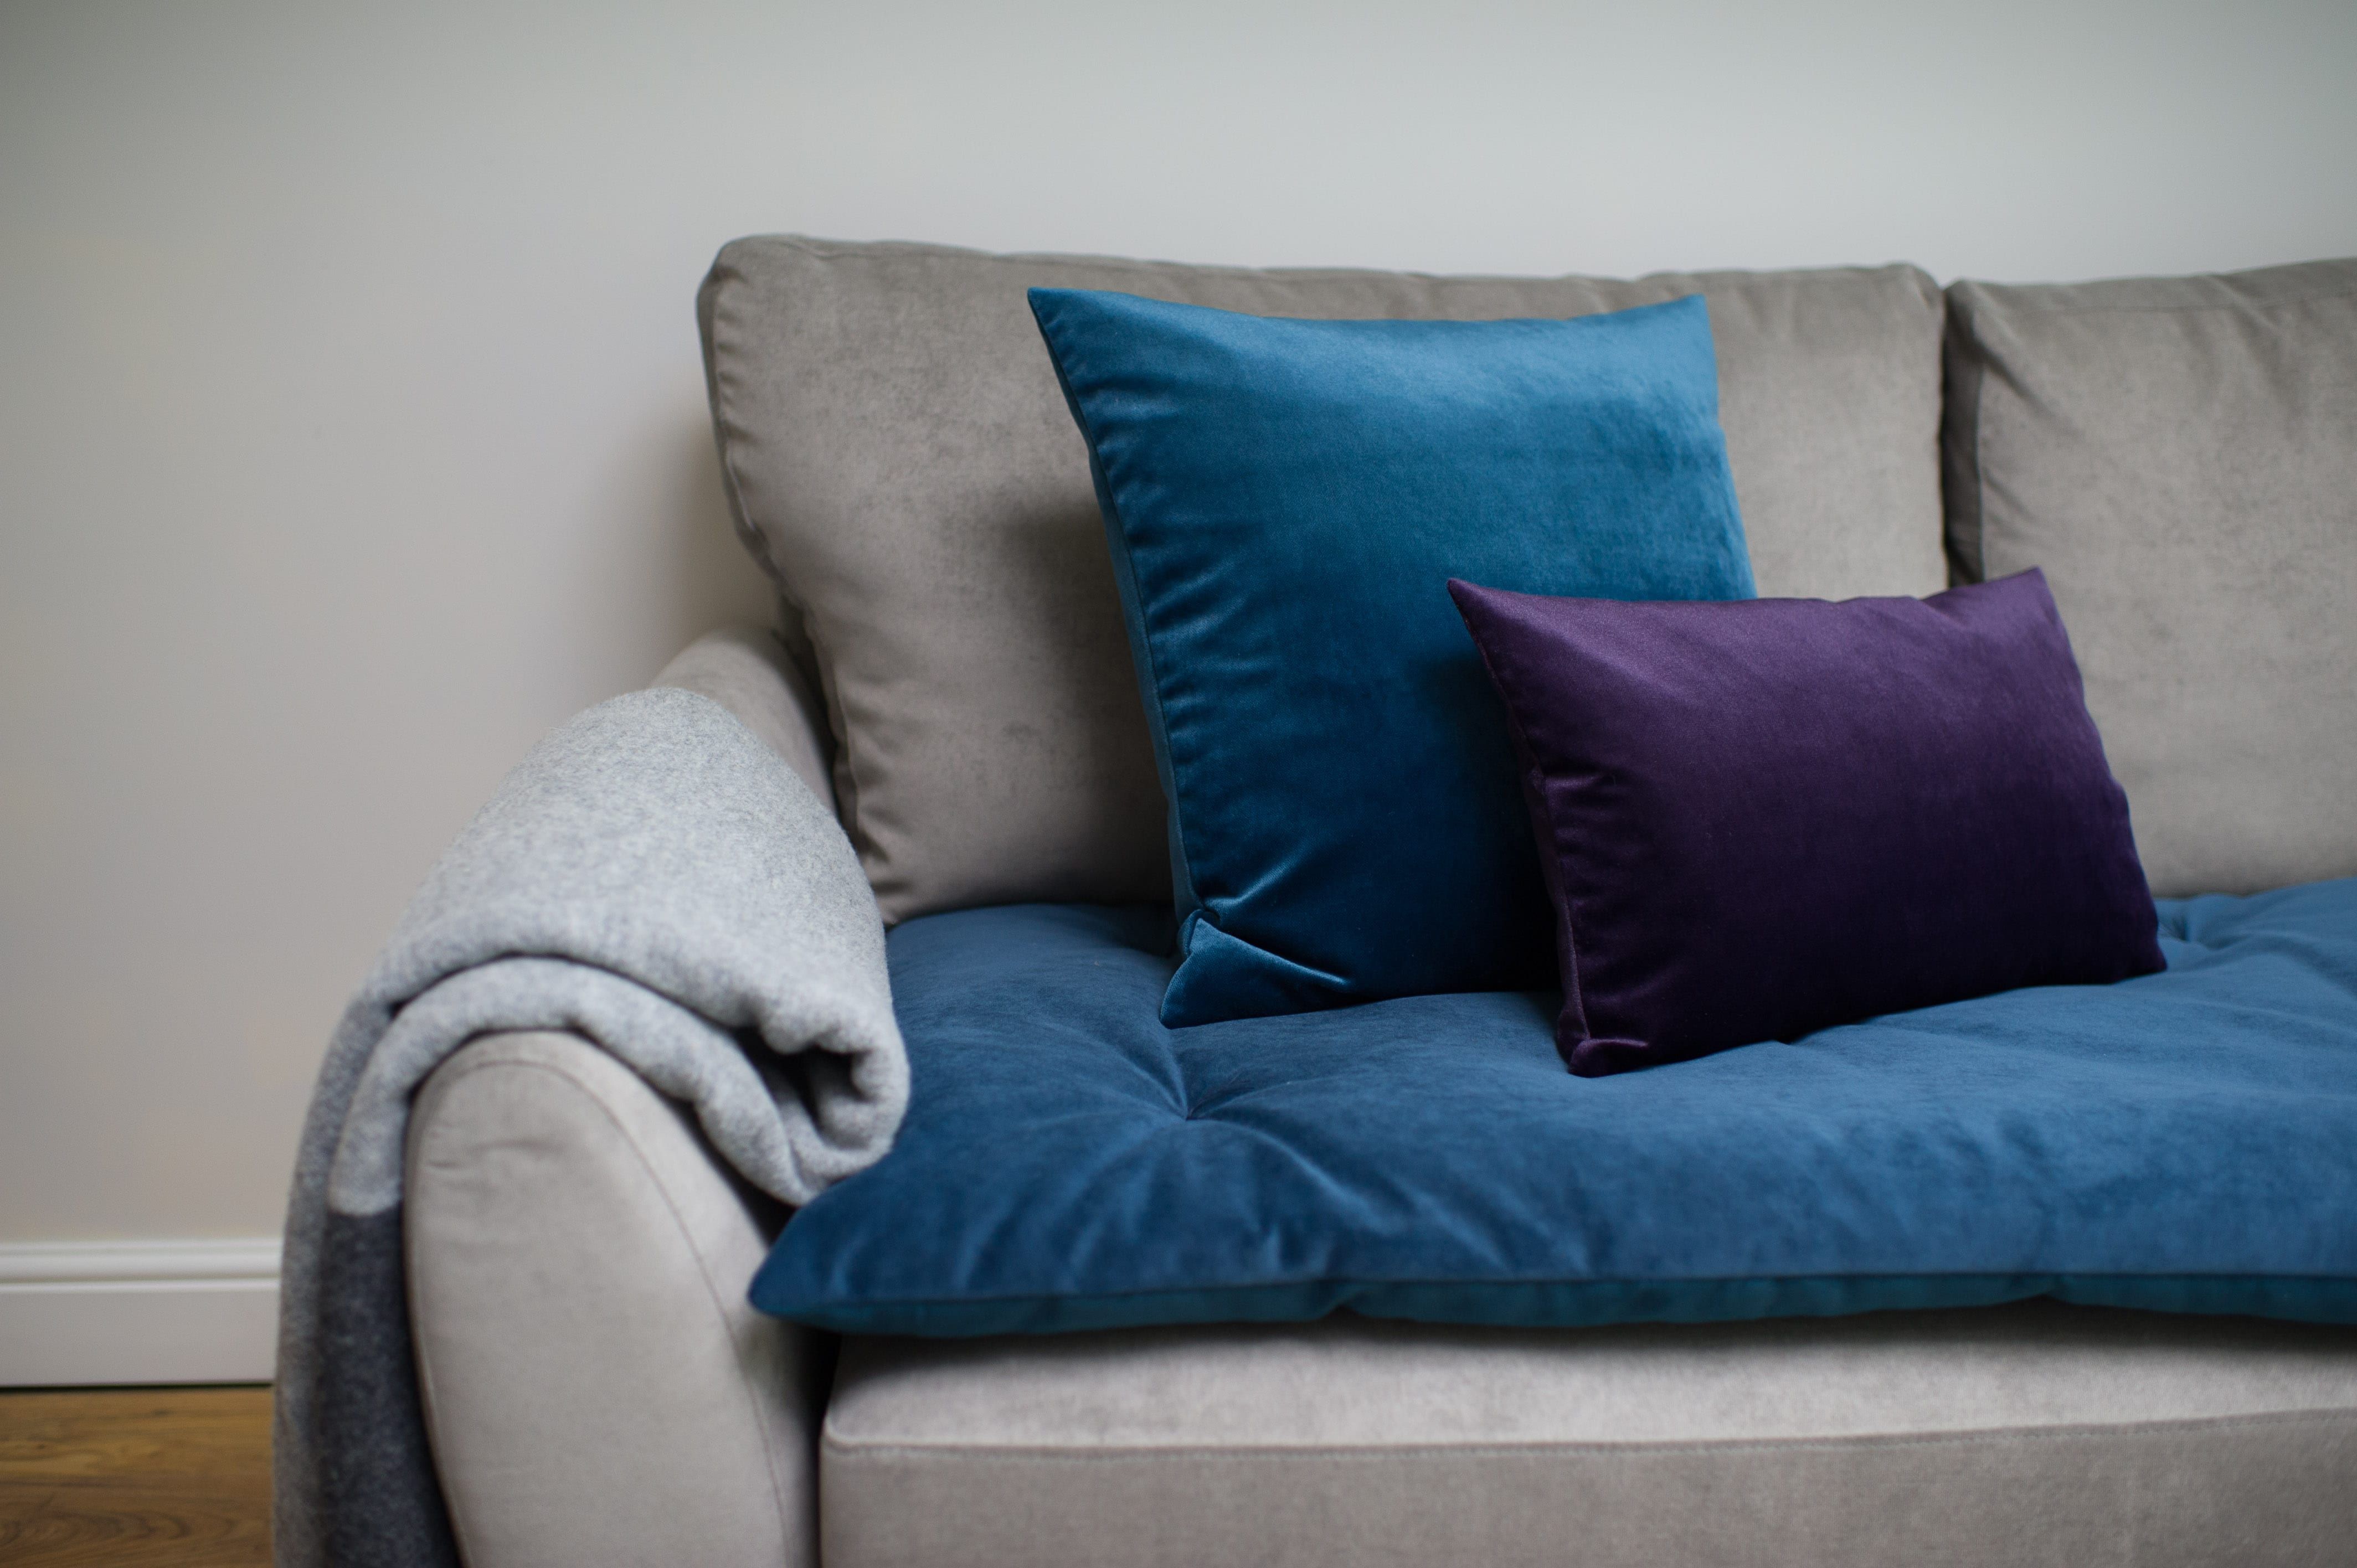 Plush Velvet Sofa Topper in Teal The Lounging Hound